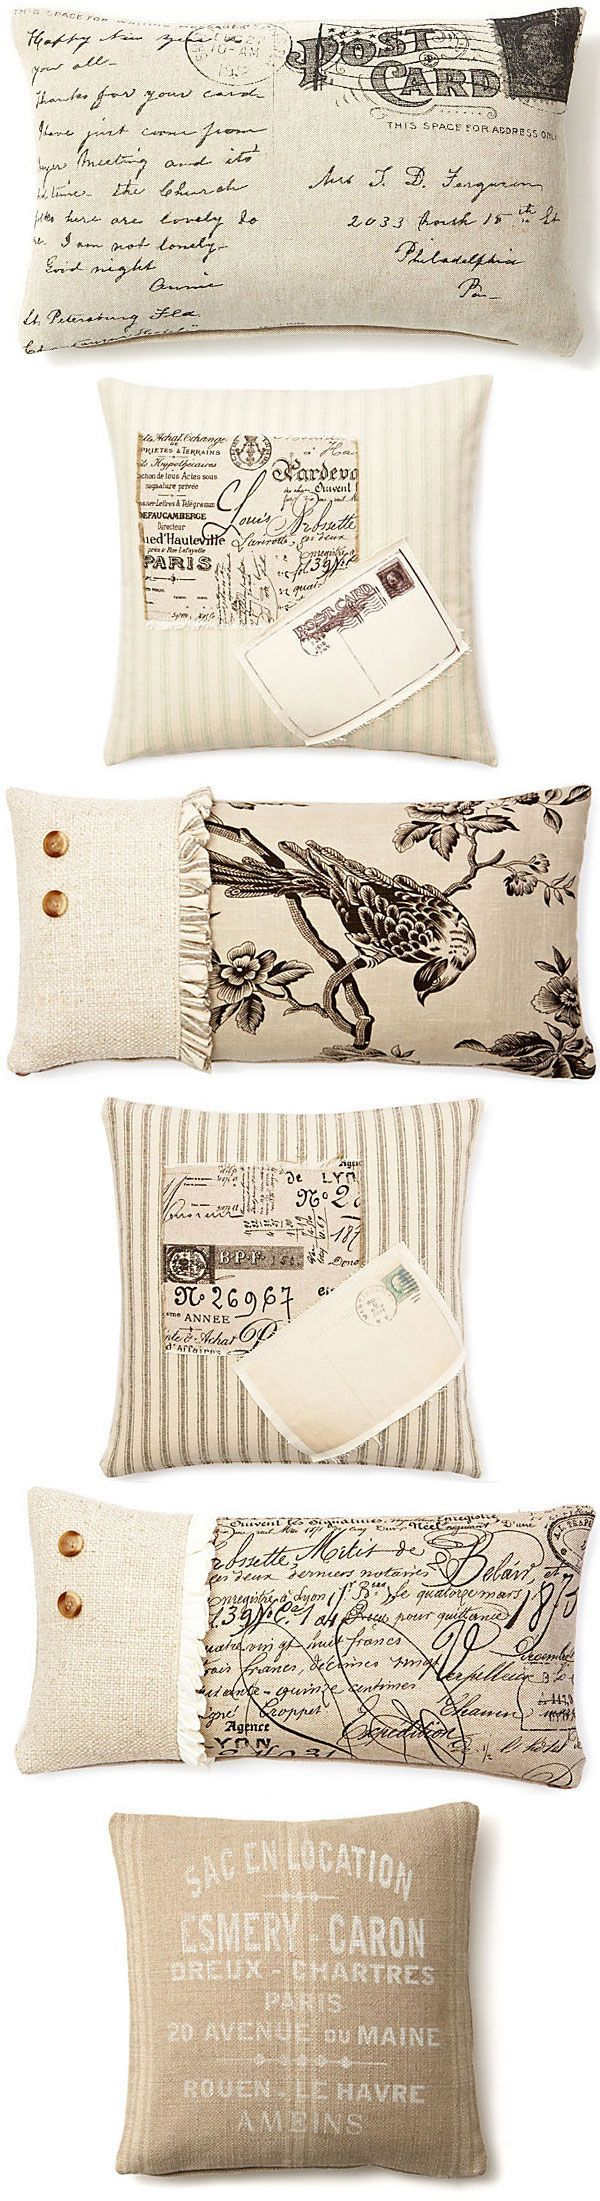 INSPIRATION :: More French Laundry Home pillow ideas using fabric & transfers. | #frenchlaundryhome #pillows #transfers: